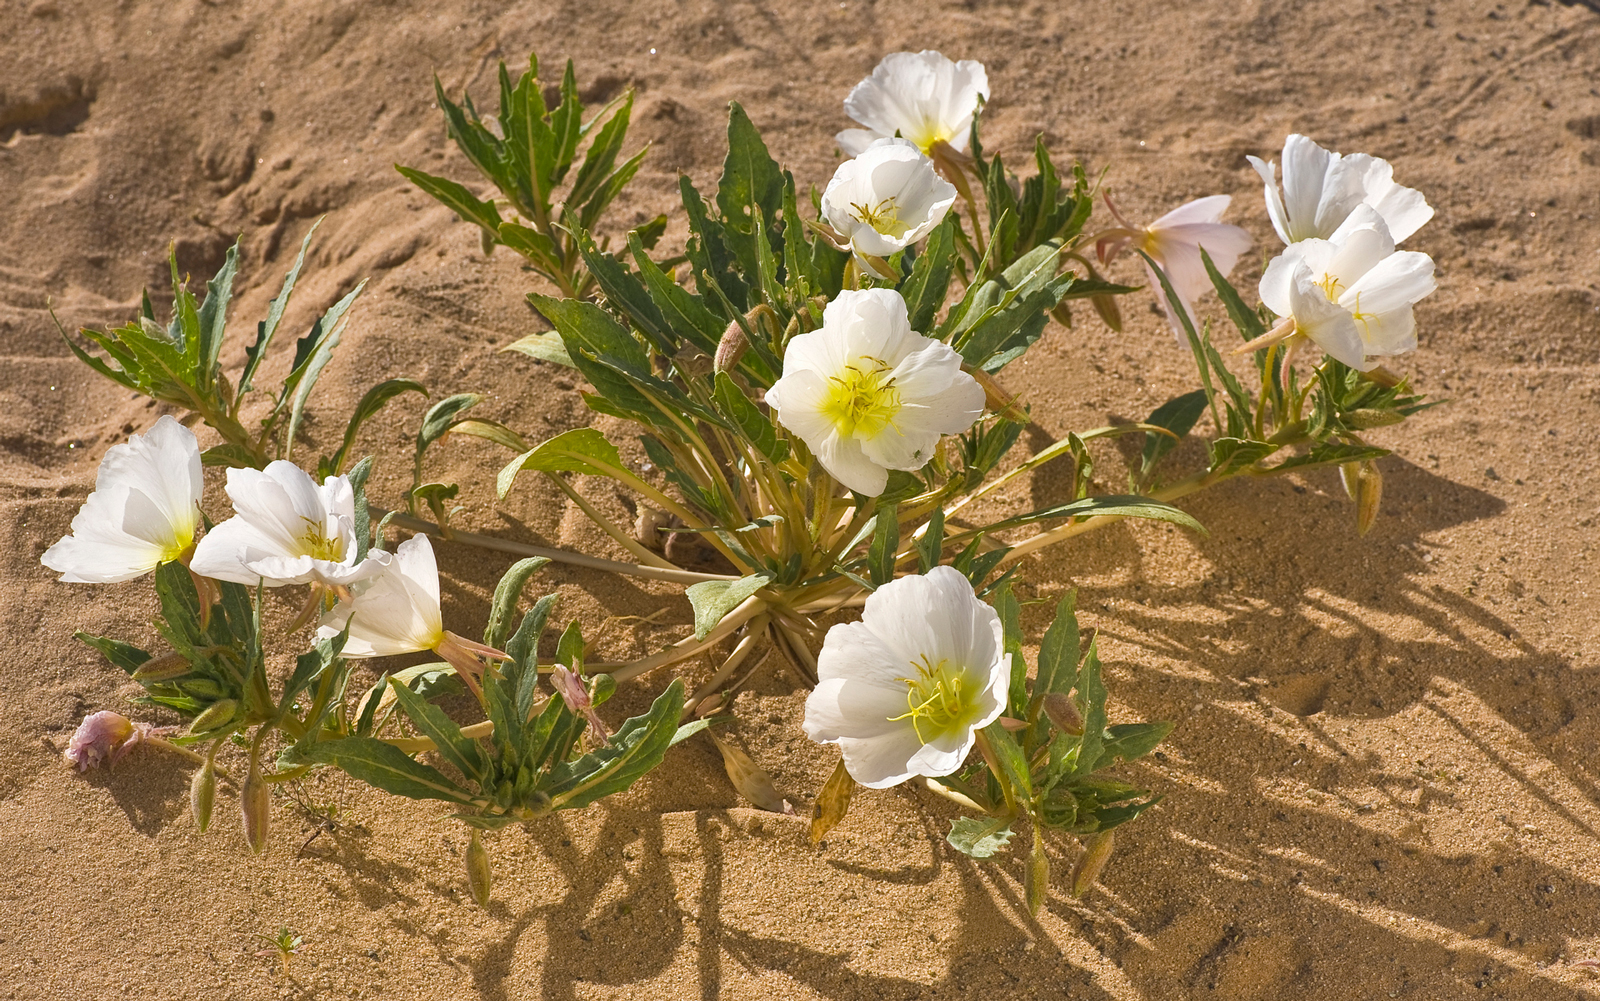 A Rare Wildflower That Only Blooms in Death Valley Was Saved From Extinction